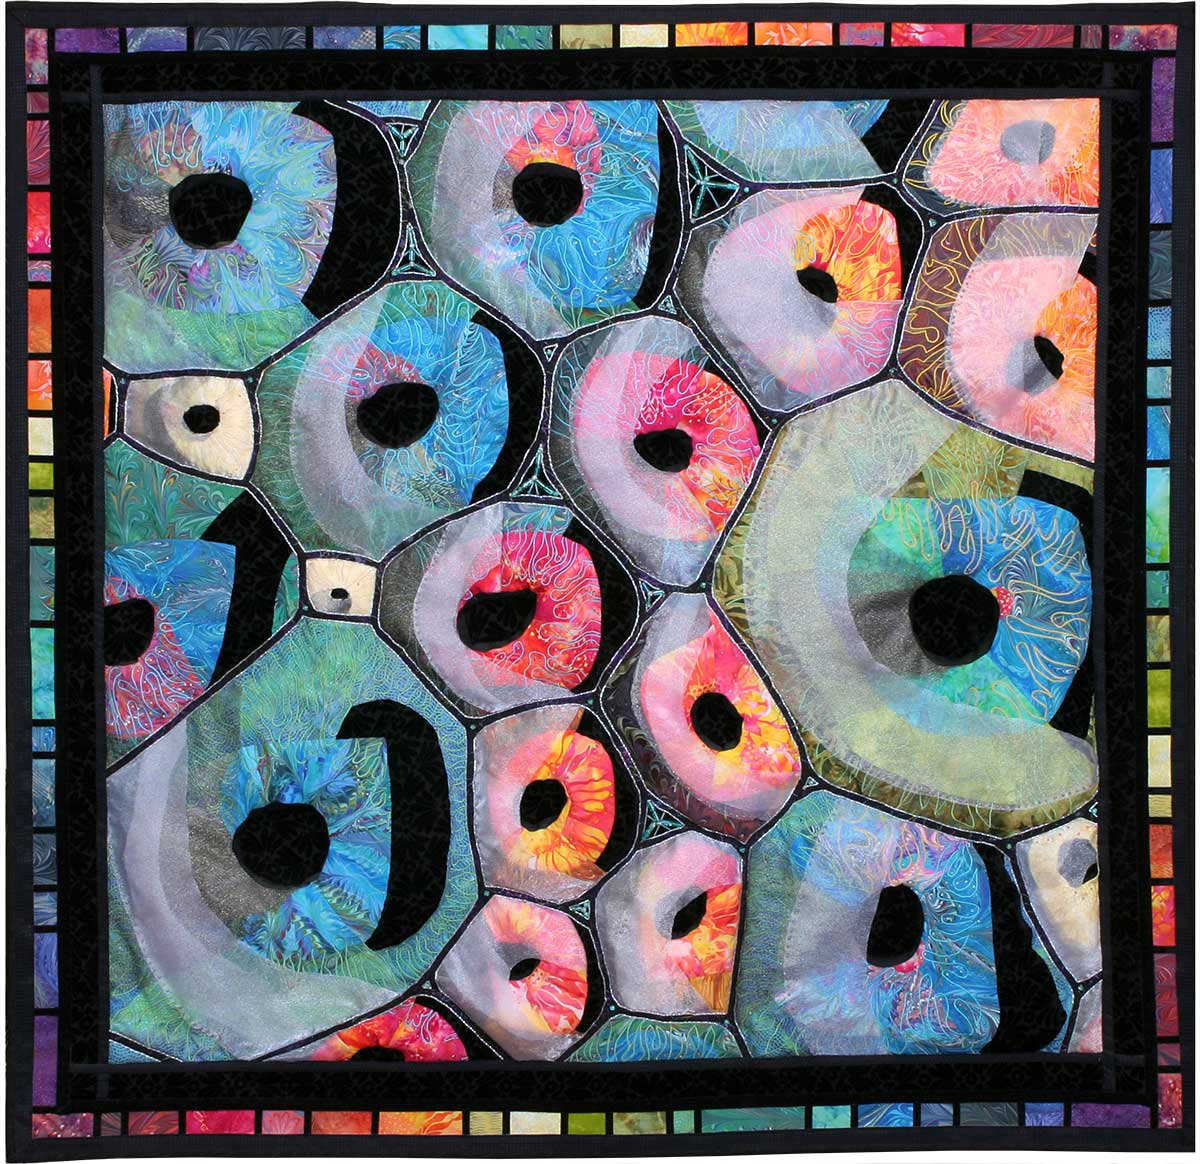 Art Quilt, Hawking's Bubbles, by Meri Vahl